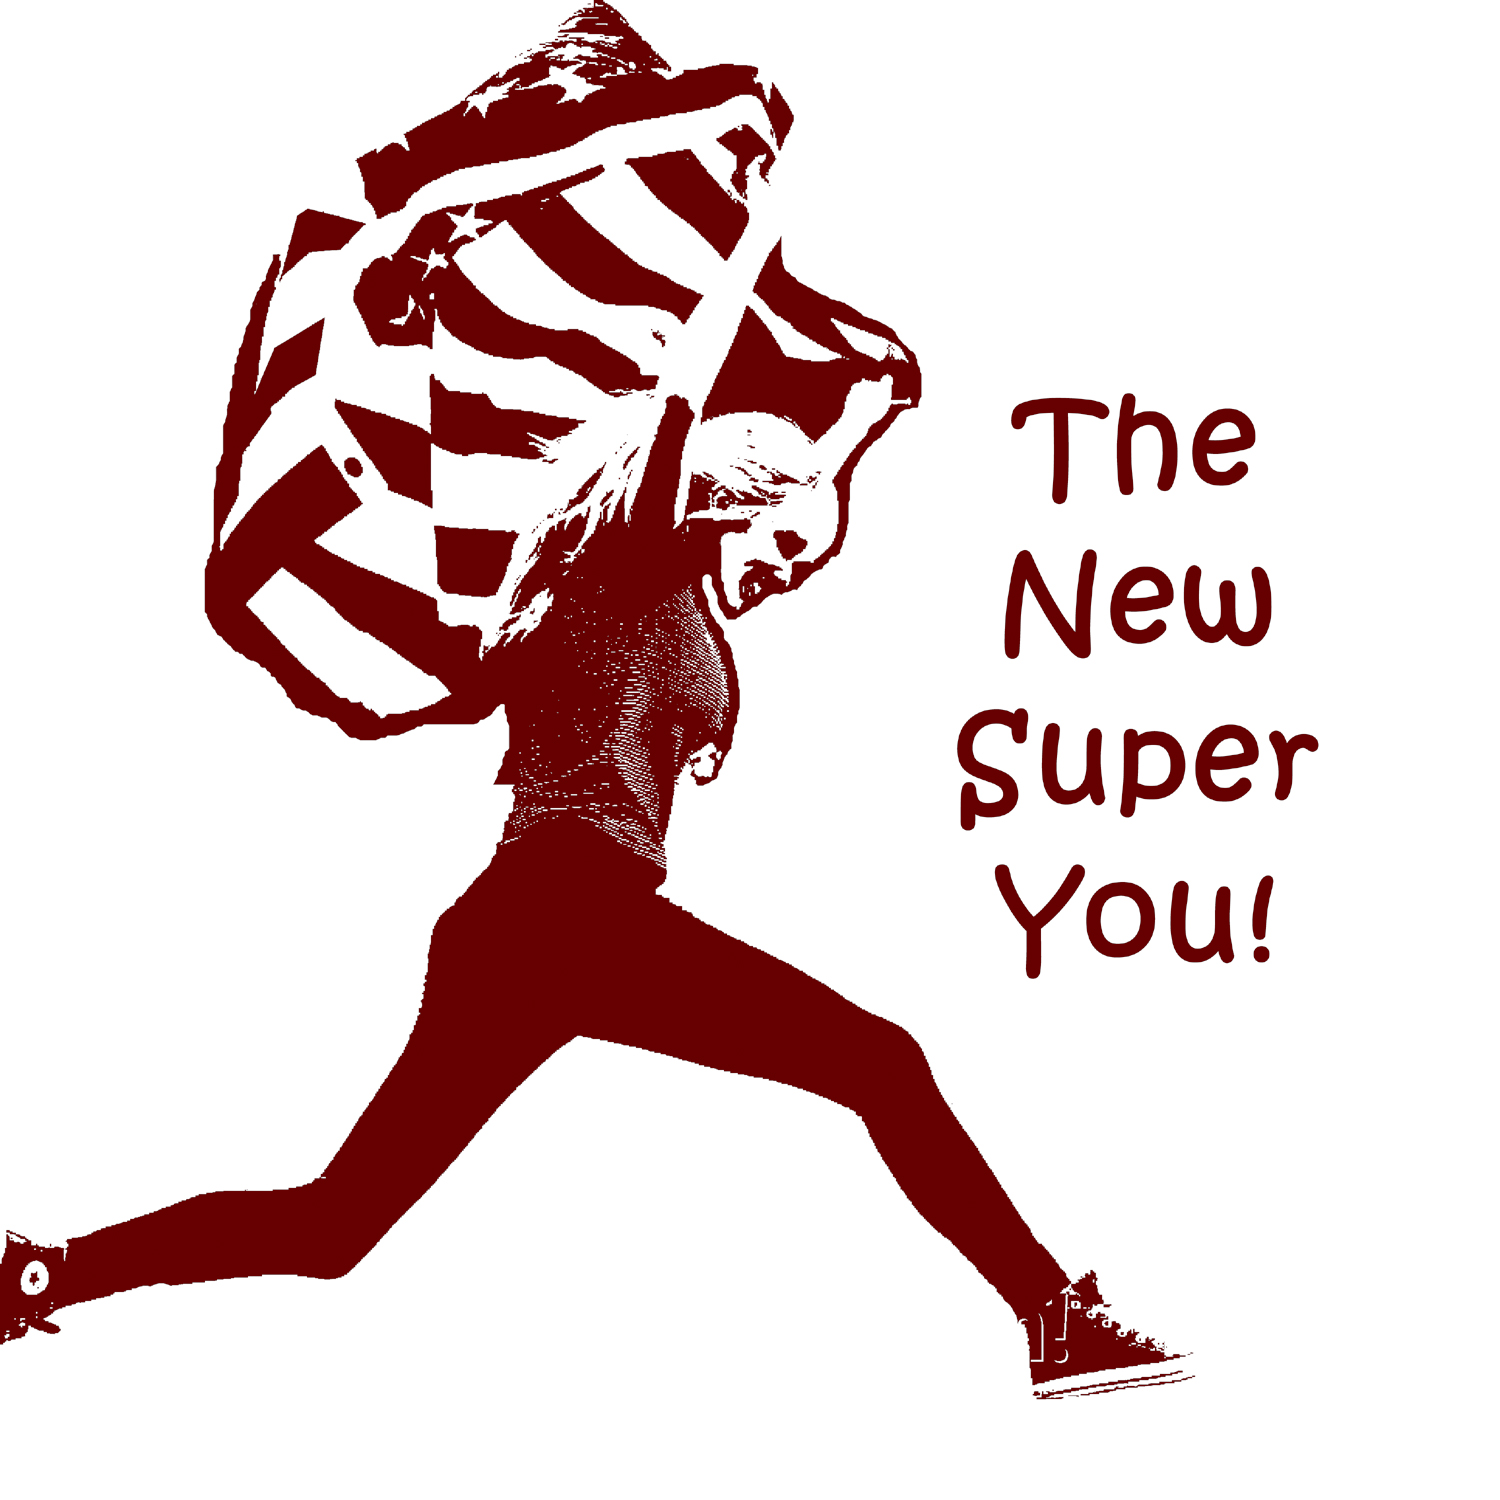 The New Super You